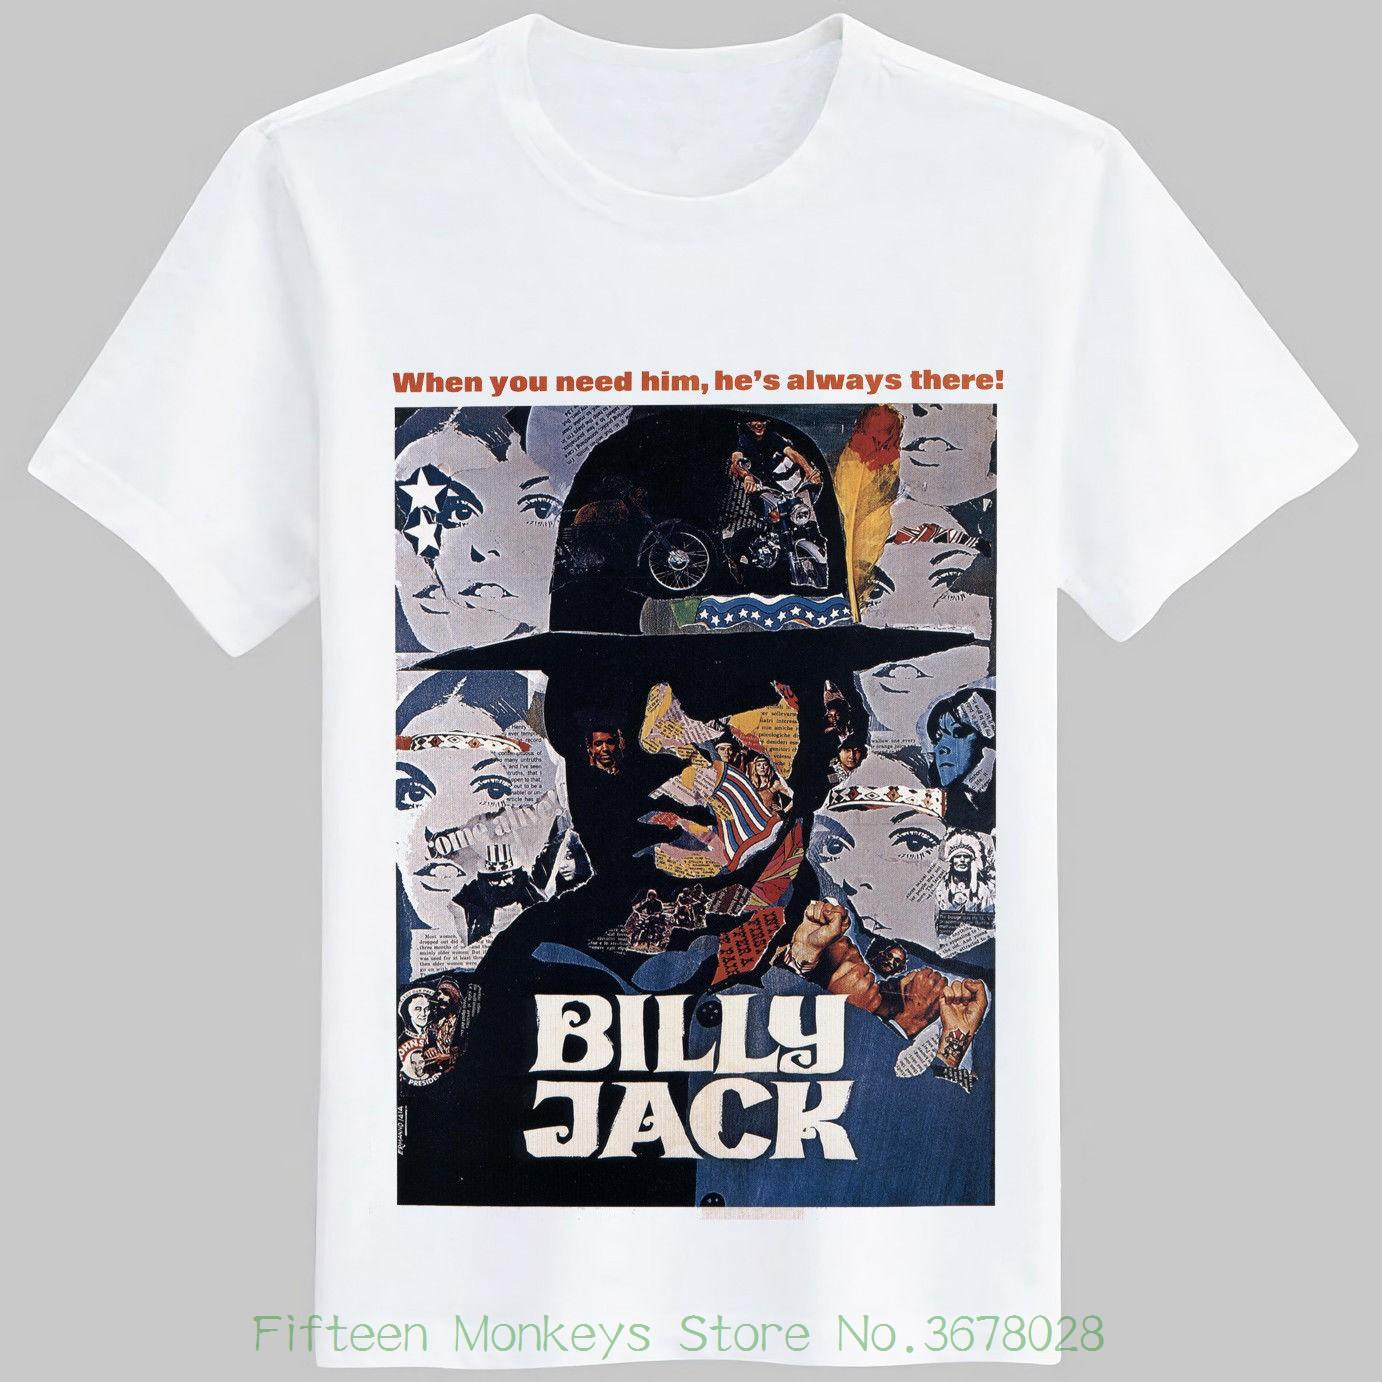 2ff30249 Men Cotton Printed T Shirt Billy Jack T Shirt Movie Poster Vigilante Navajo  Veteran Martial Artist To Interesting T Shirt Designs T Shirts Cool Designs  From ...